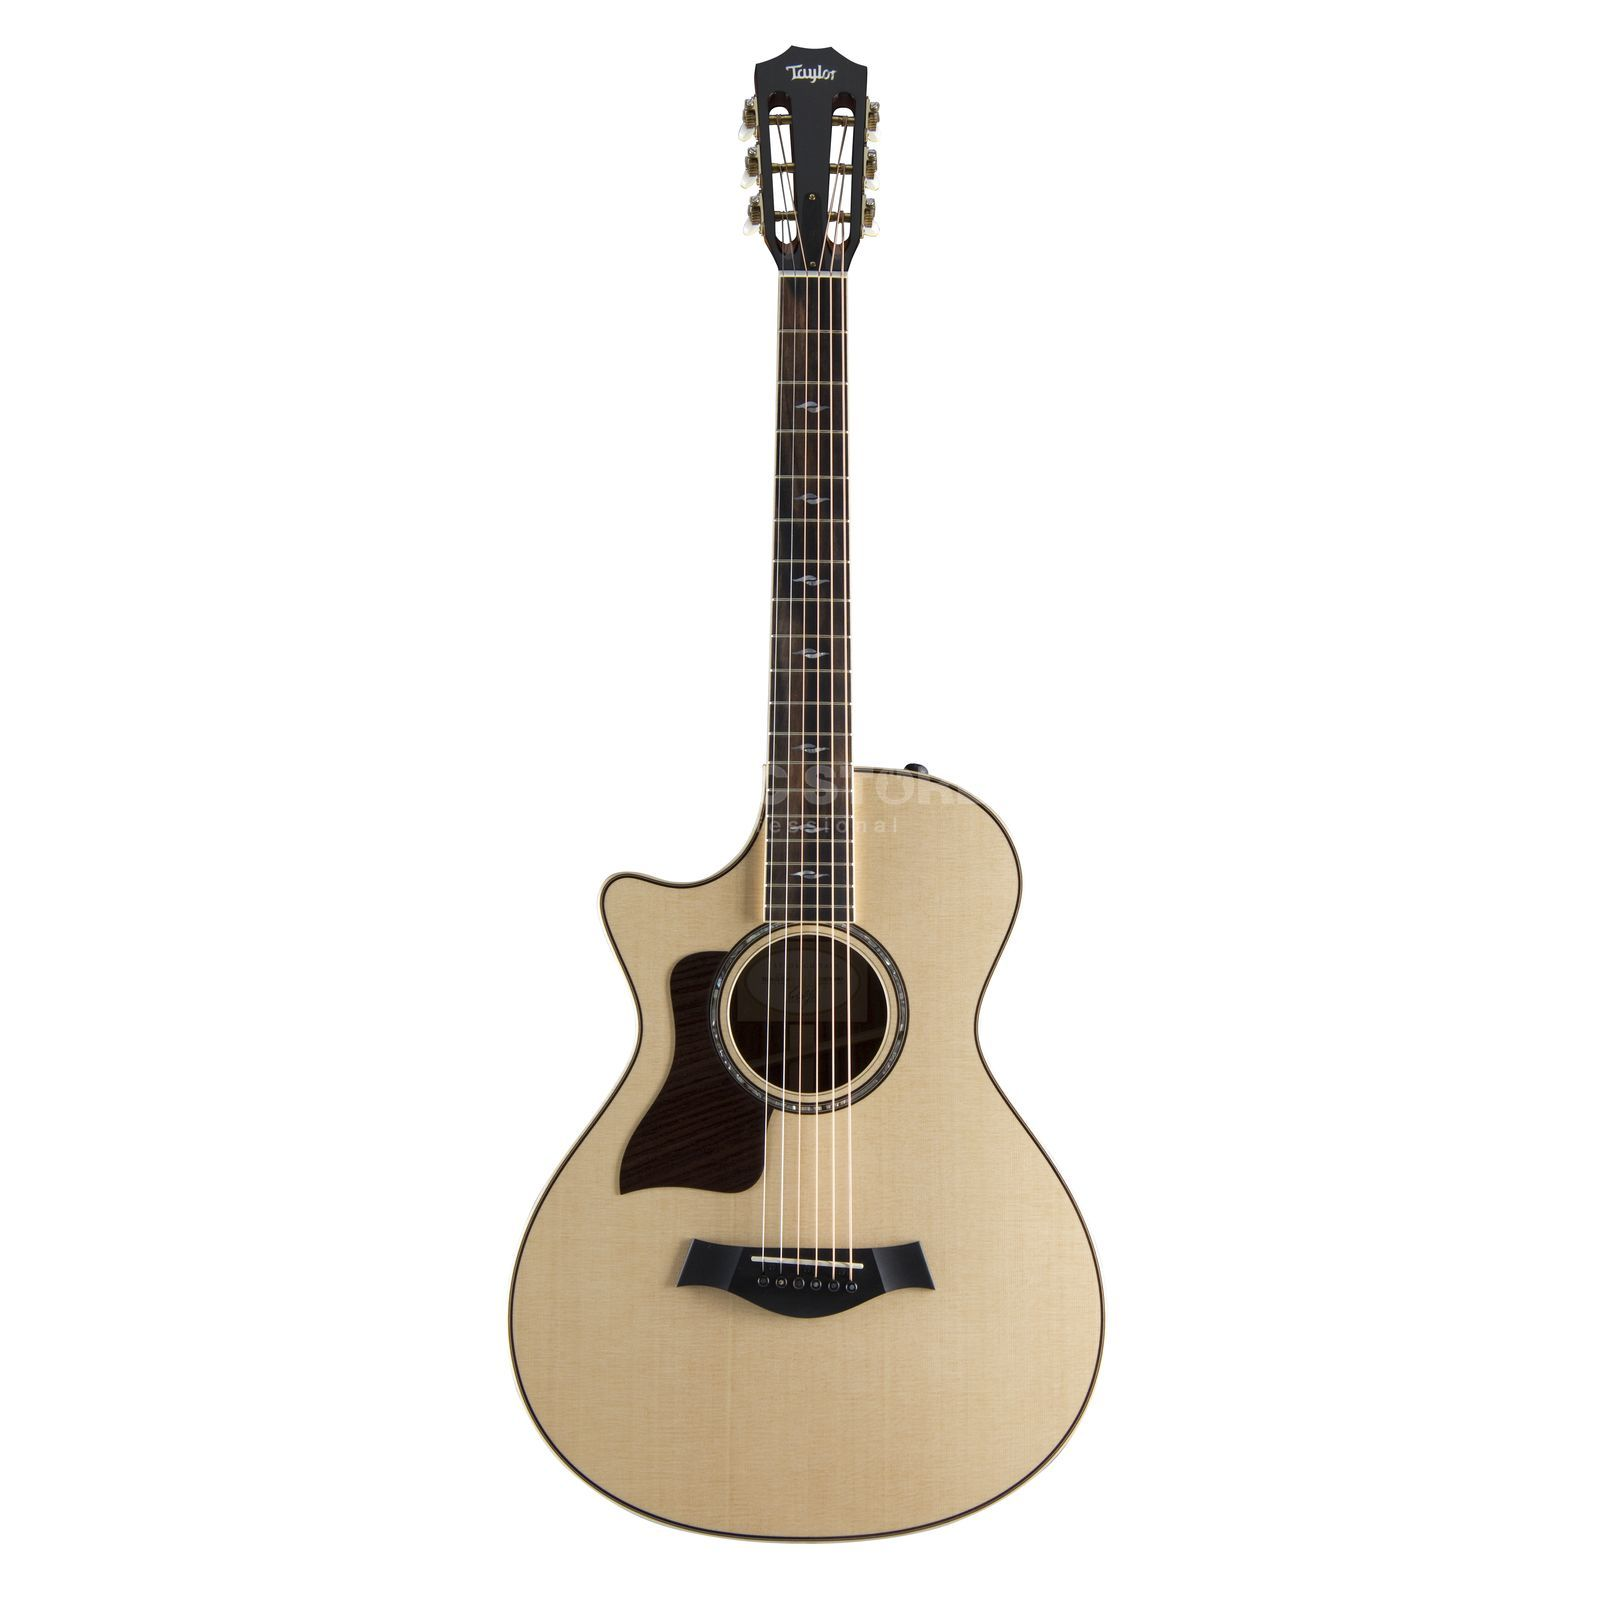 Taylor 812ce 12th fret Grand Concert Lefthand Natural, incl.  Case Produktbillede